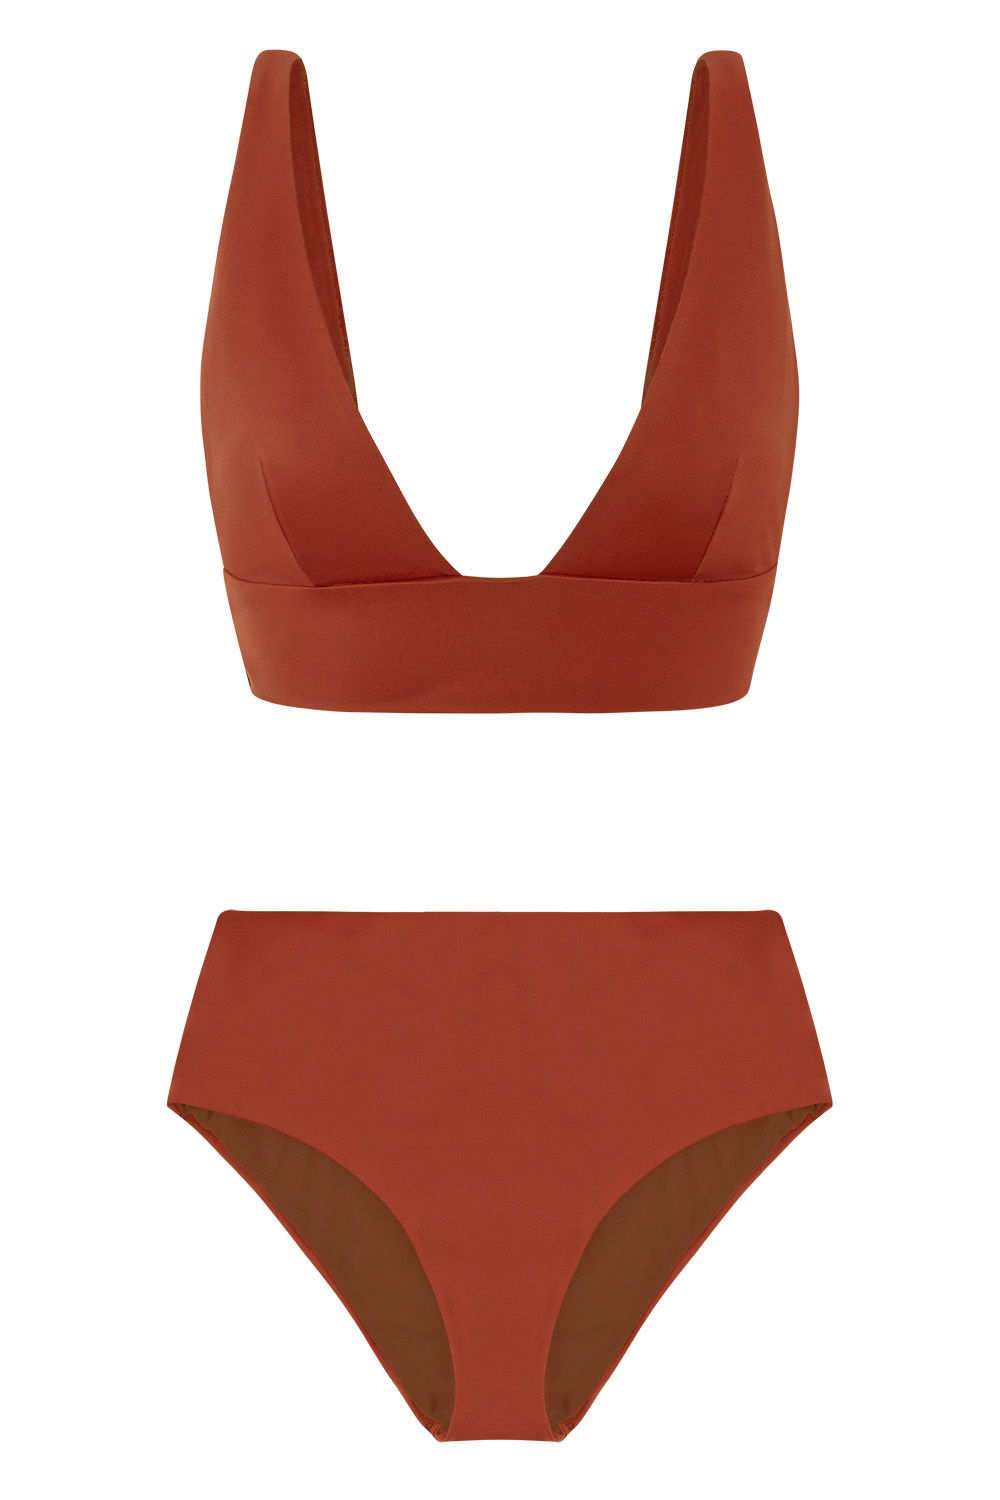 NOW_THEN Sustainable Luxury Swimwear / Ropa de baño sostenible. Eco swimsuits and bikini / Bikinis y bañadores ecológicos.